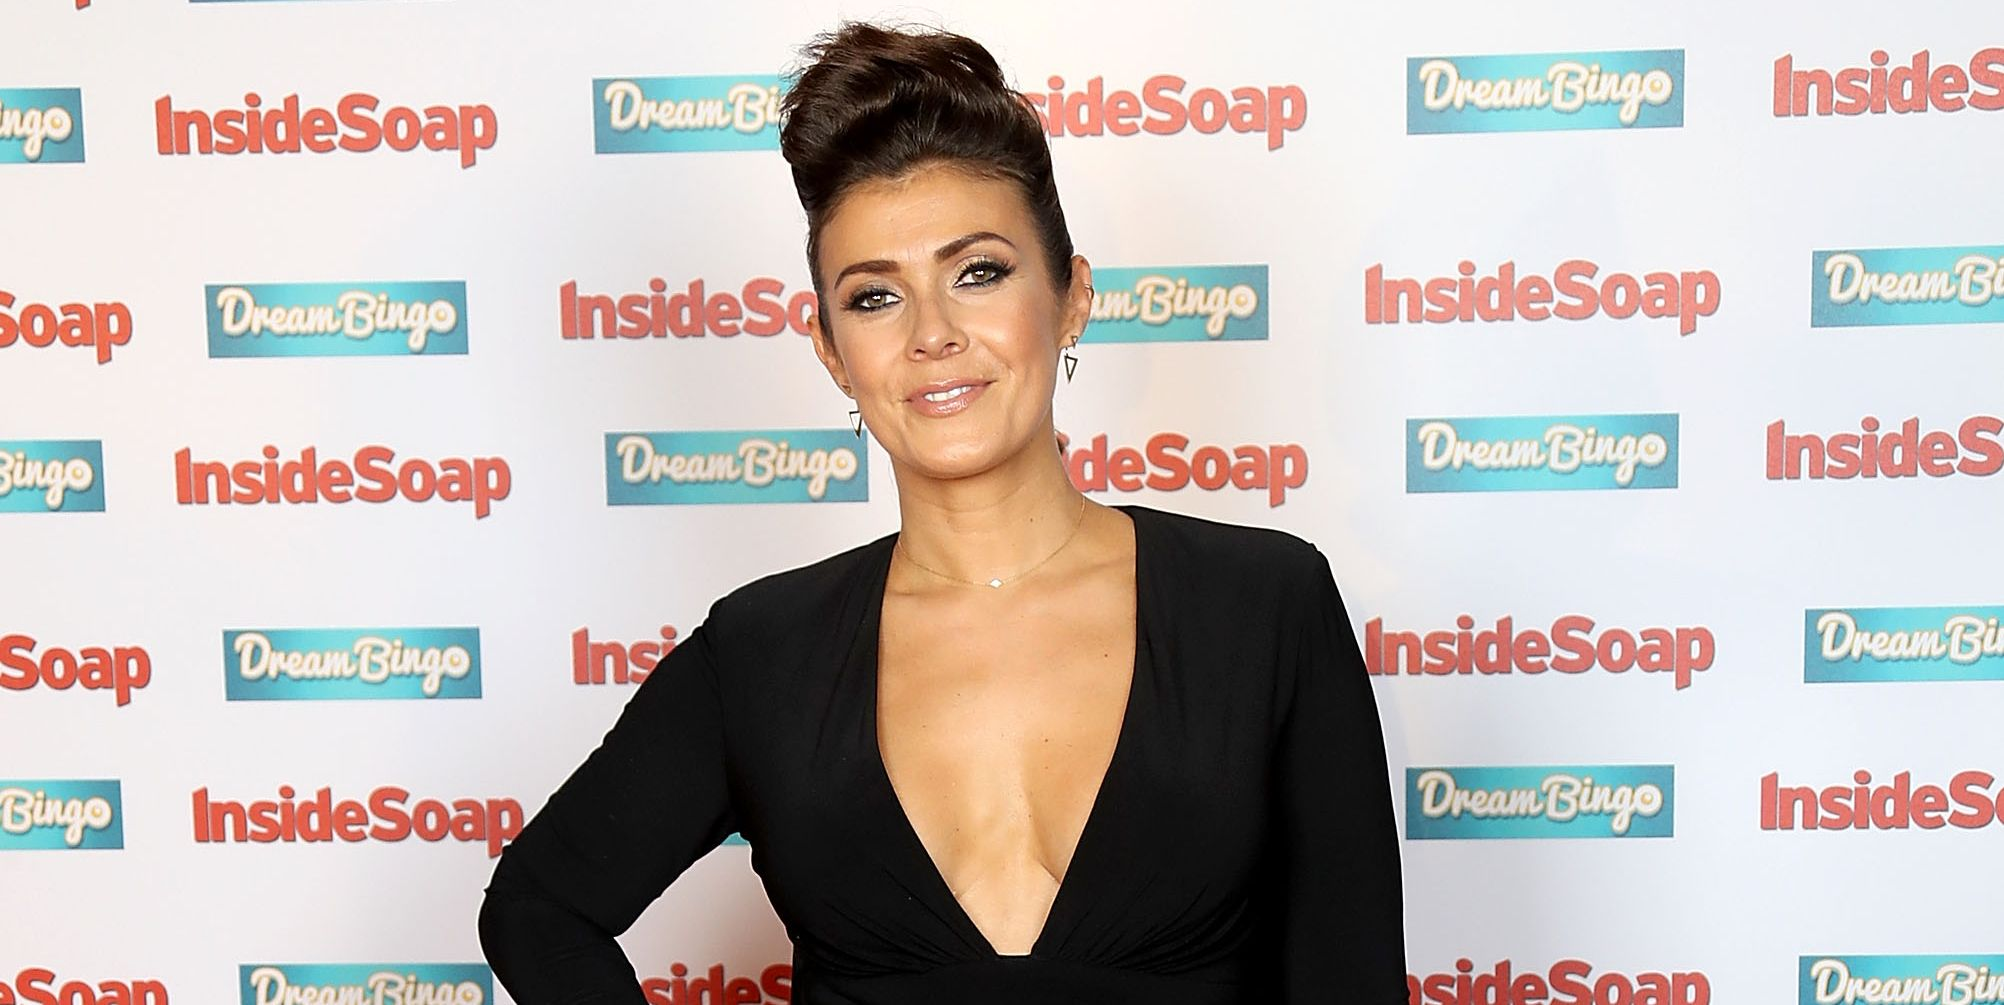 Kym Marsh attends the Inside Soap Awards at The Hippodrome on October 3, 2016 in London, England